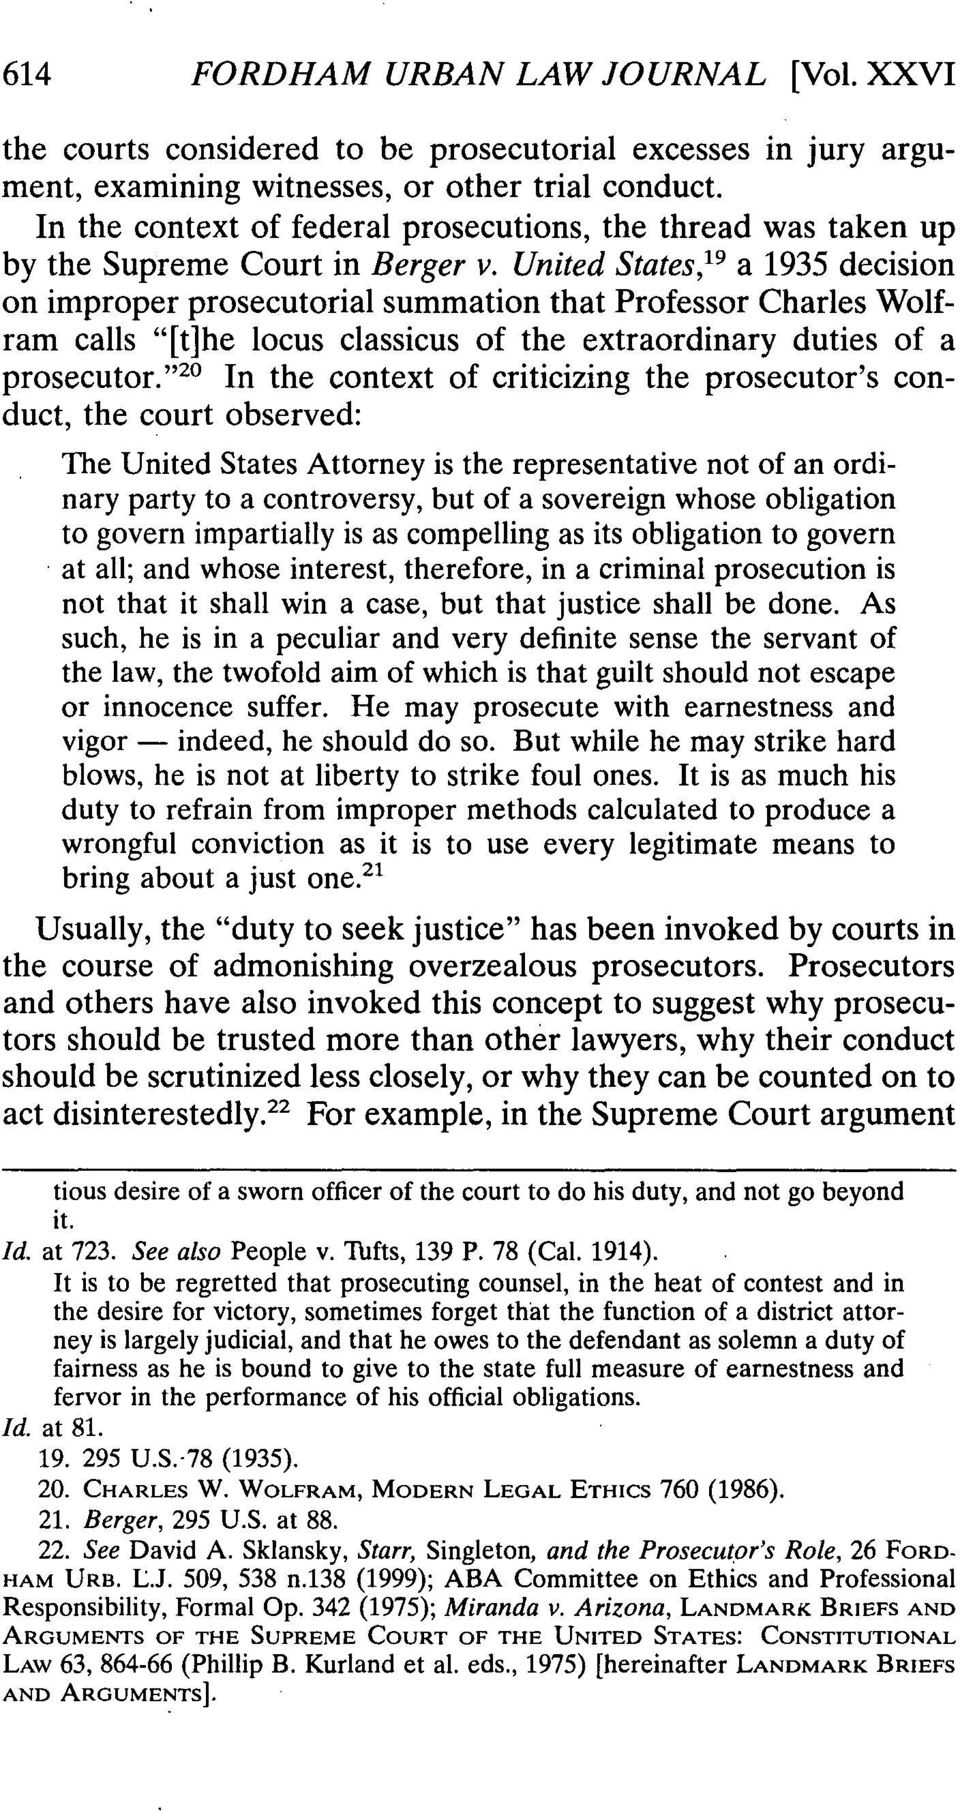 "United States, 19 a 1935 decision on improper prosecutorial summation that Professor Charles Wolfram calls ""[t]he locus classicus of the extraordinary duties of a prosecutor."